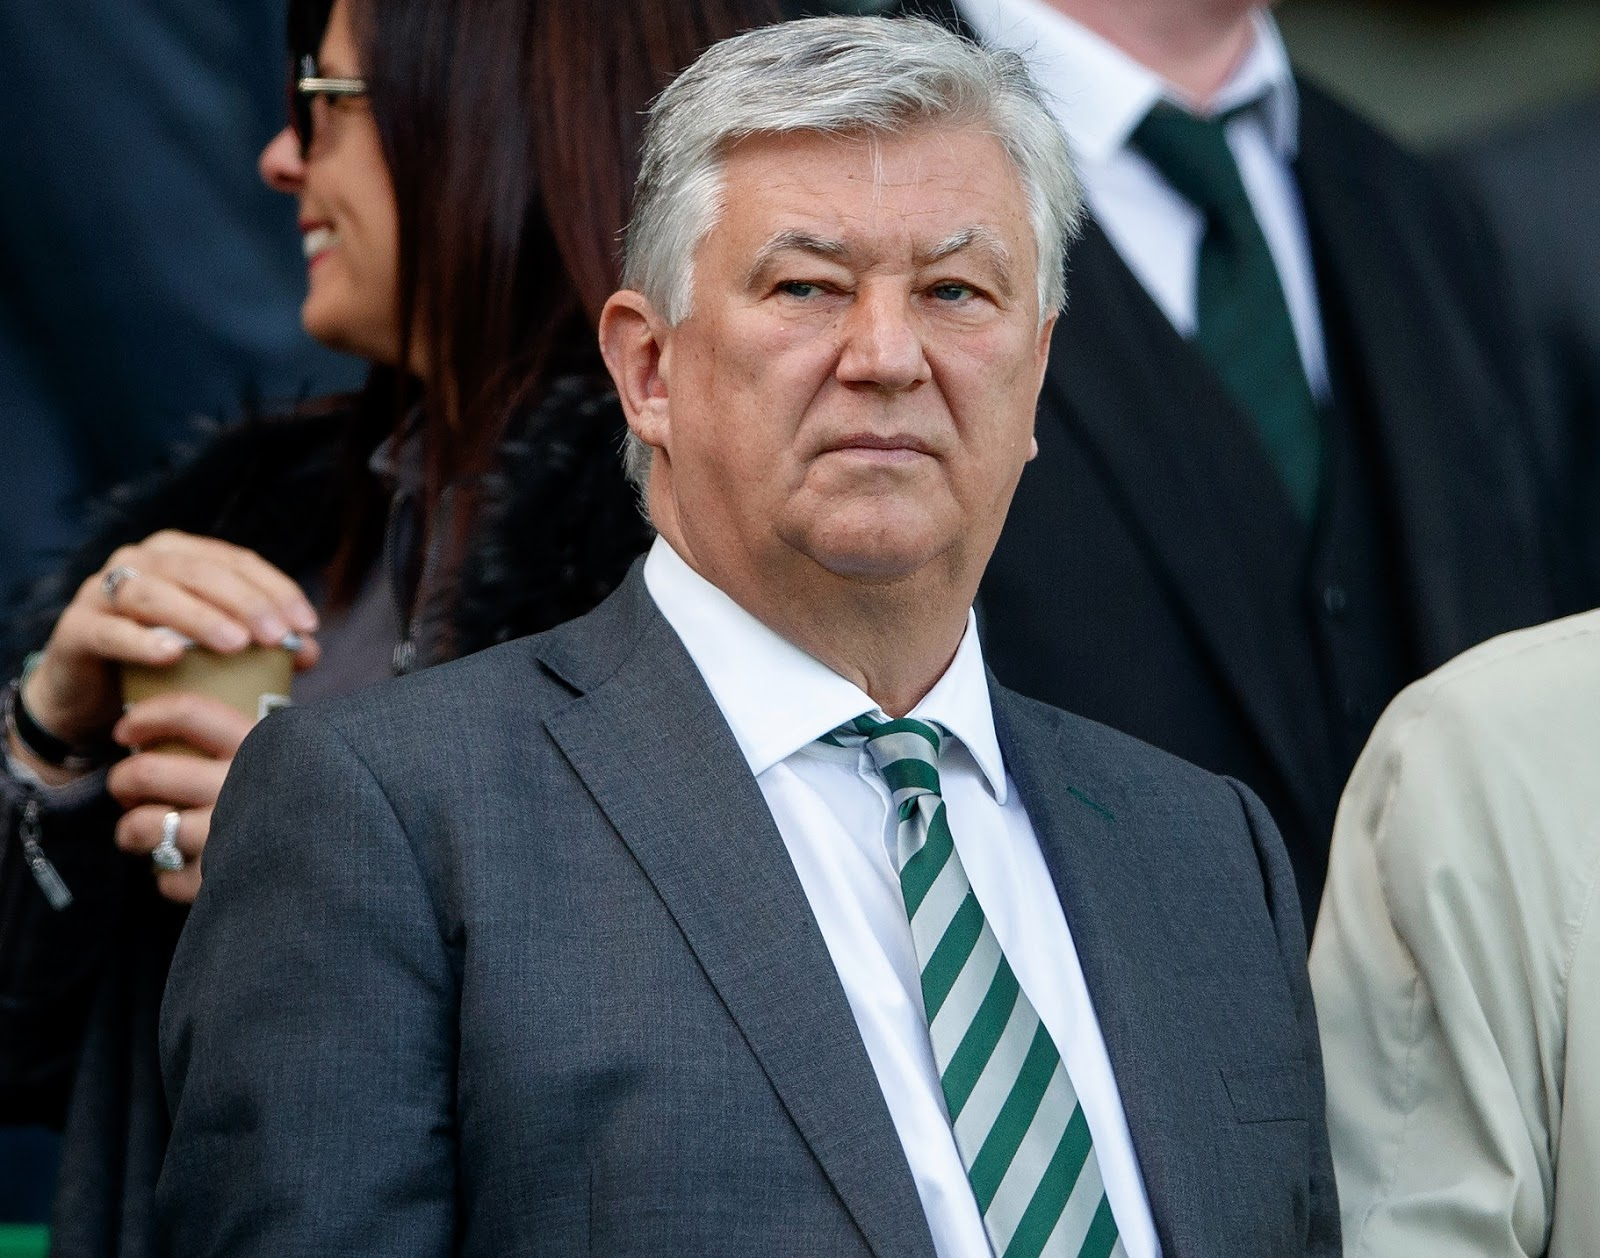 Lawwell's 'poor taste' and ill-judged comment unwanted